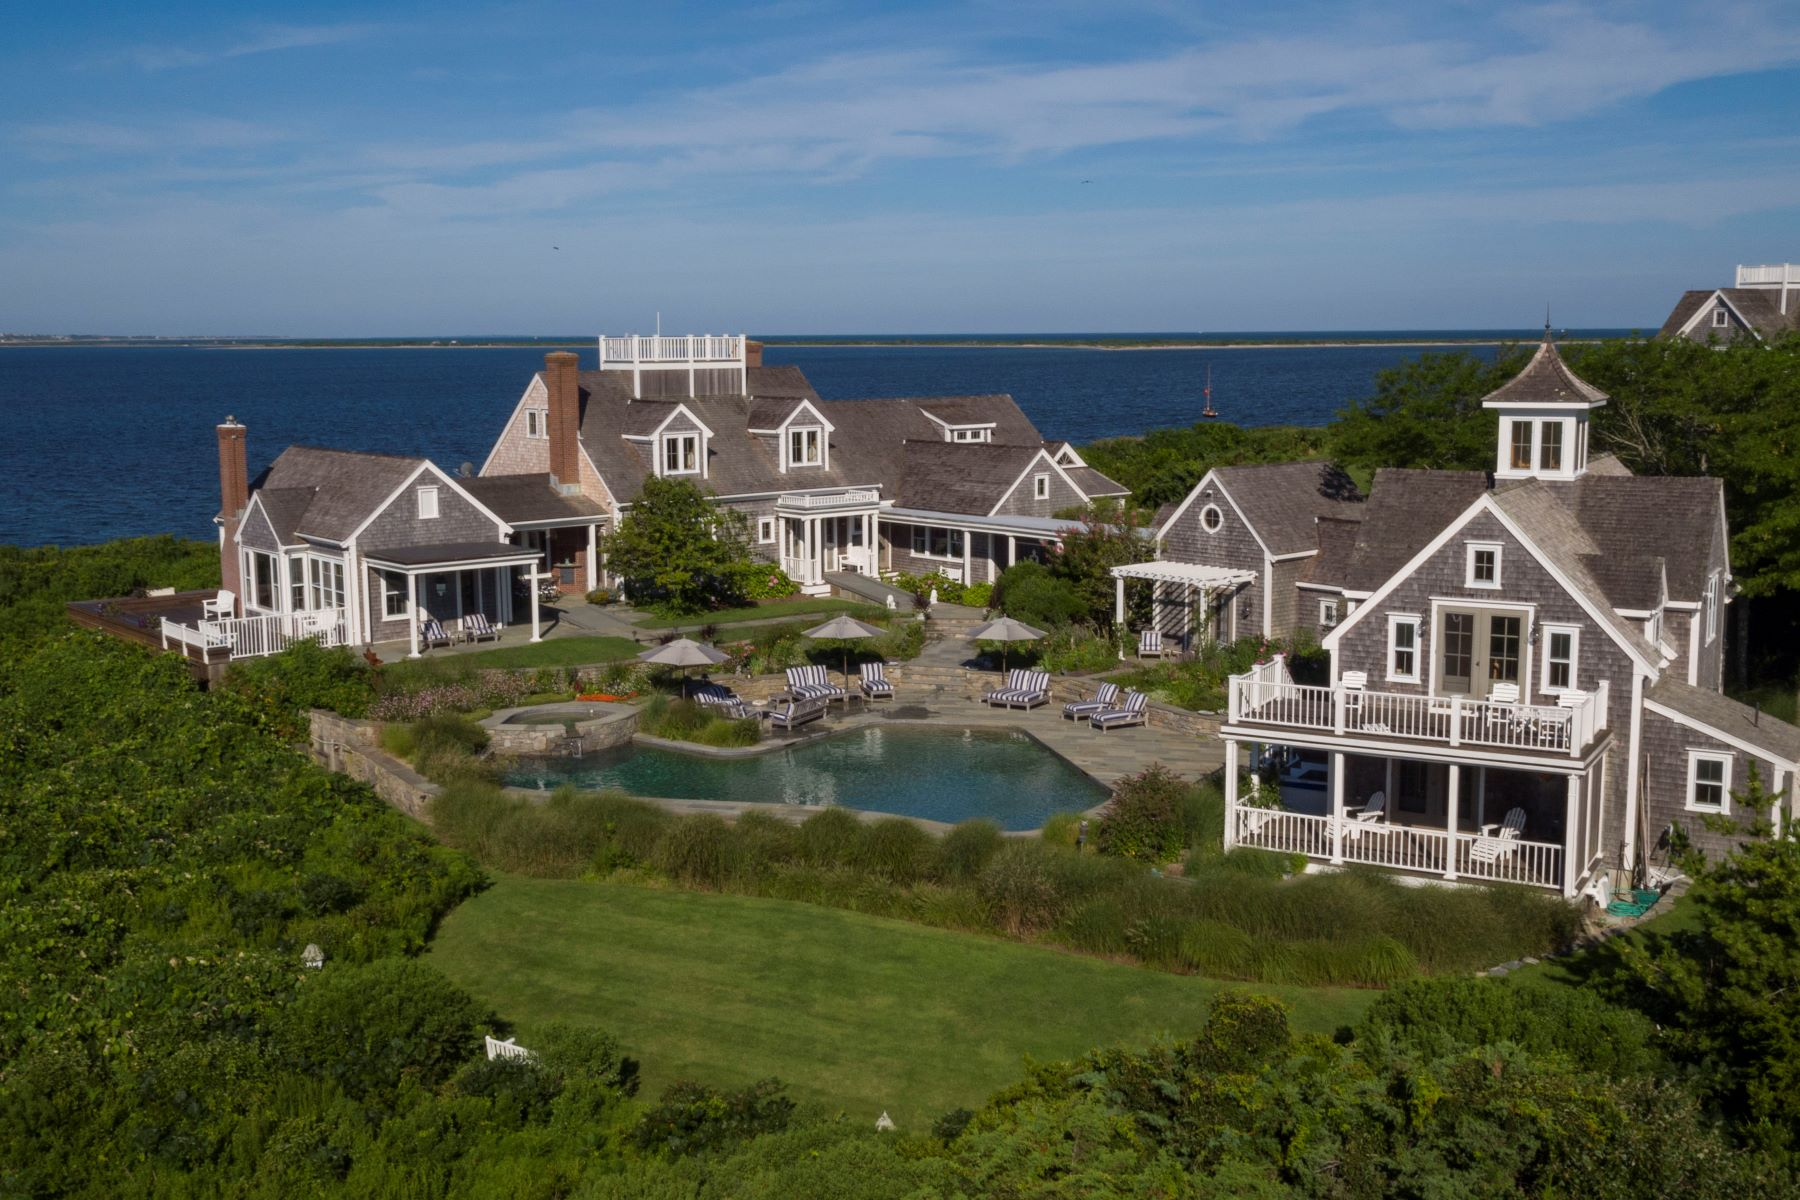 Single Family Home for Sale at Entirely Unique Waterfront Estate 72 Pocomo Road 78 Pocomo Road Nantucket, Massachusetts 02554 United States